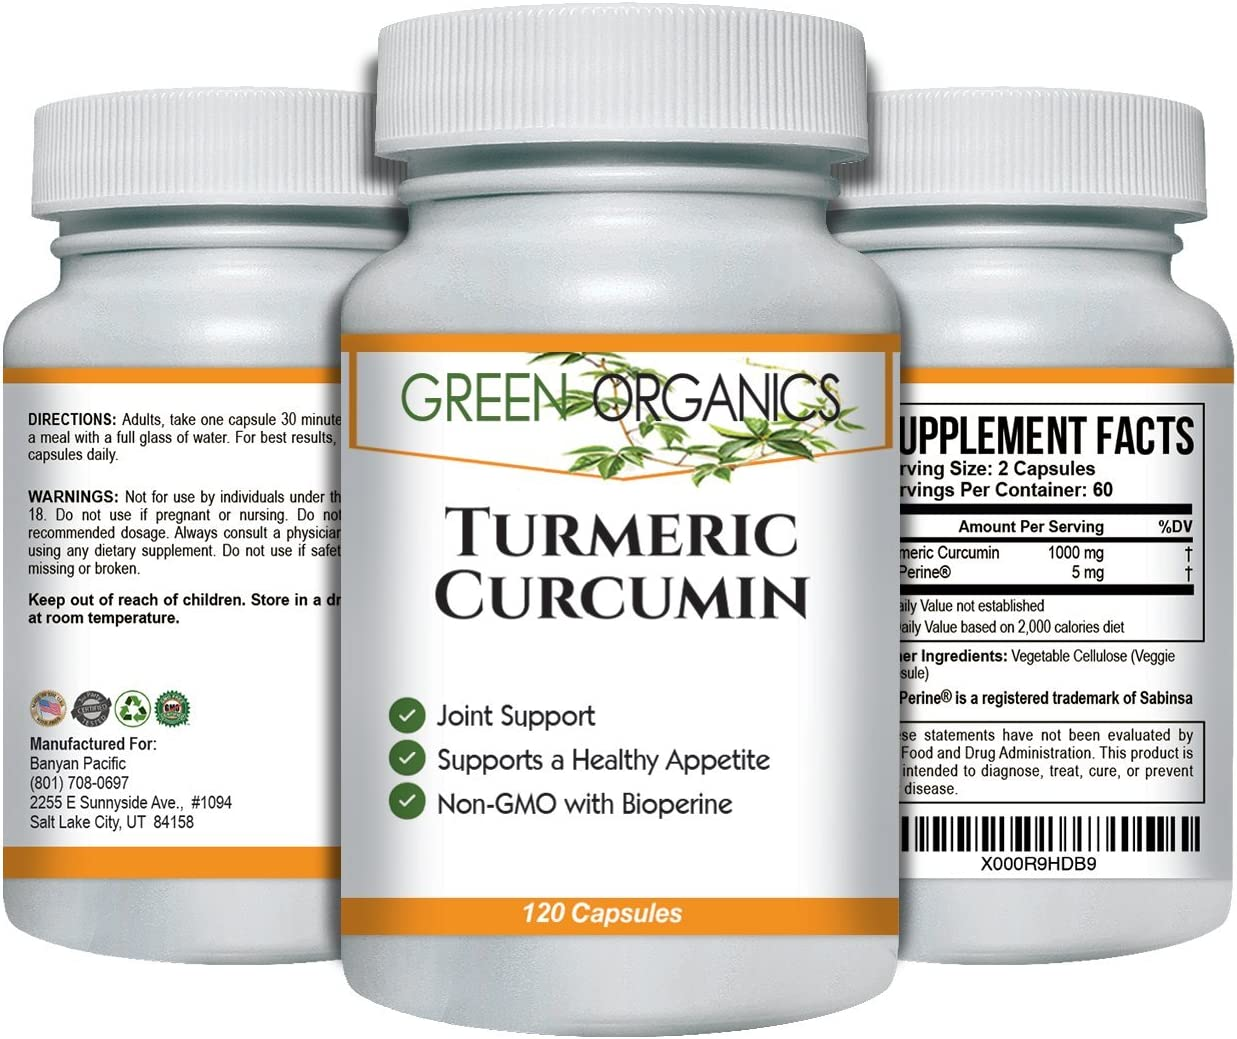 Turmeric Curcumin to Support Joint Comfort Mobility Natural Anti-inflammatory Helps Soothe Aching Joint